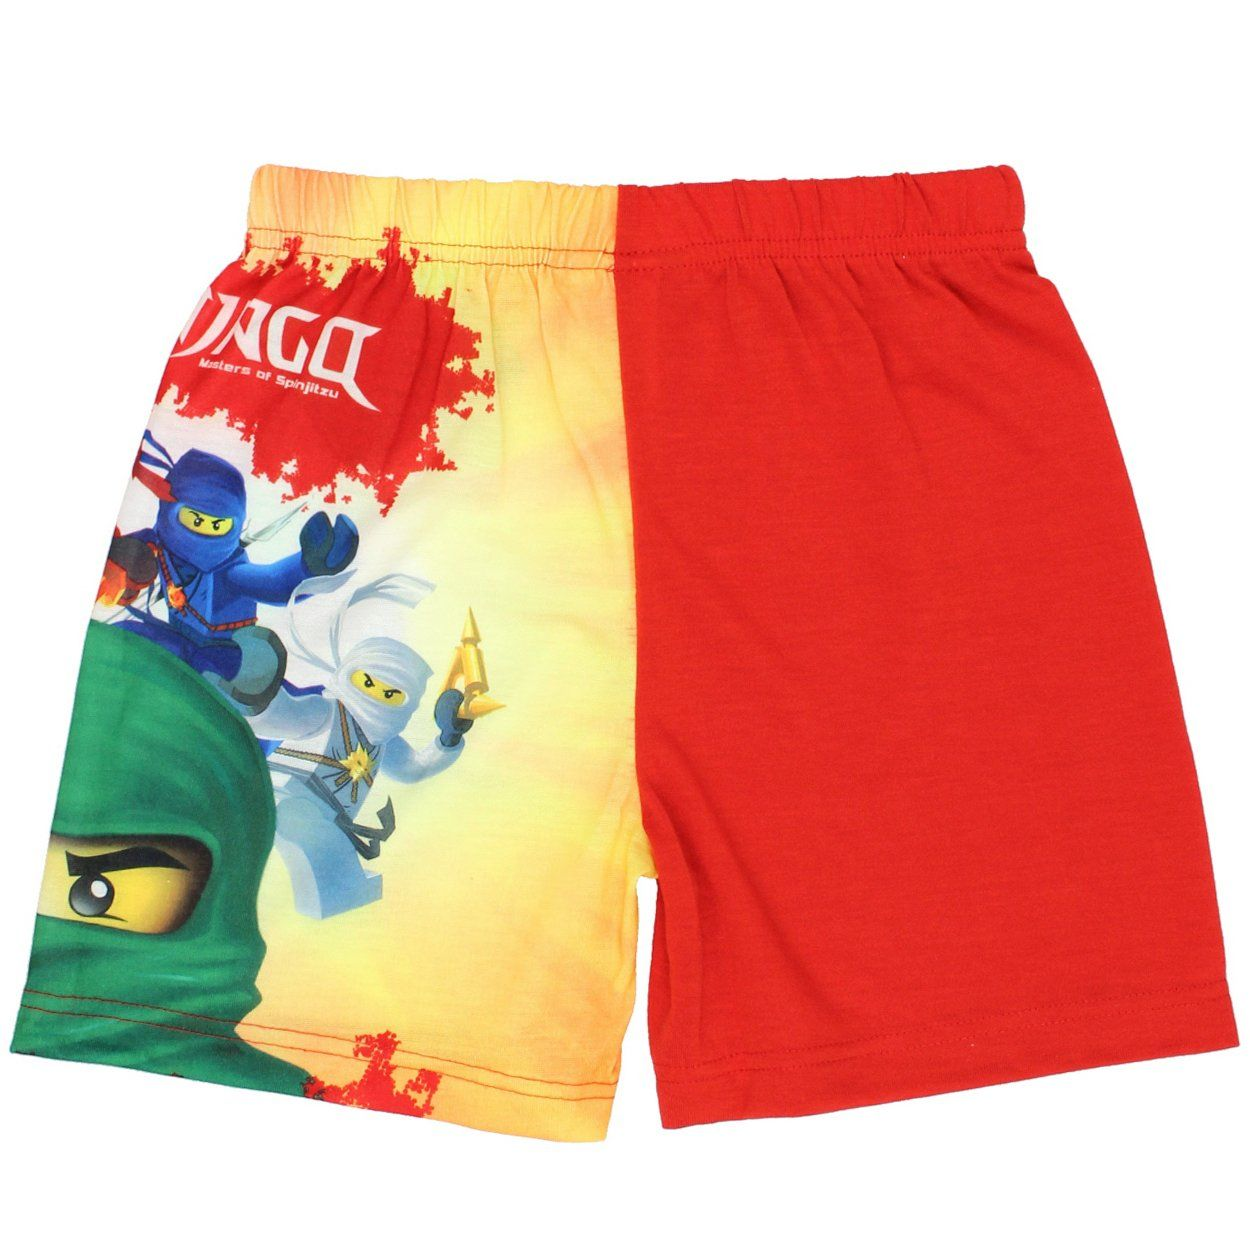 082f013e2c Lego Ninjago Lloyd ZX Boys Sleep Shorts 12 ** Check out this great  product.(It is Amazon affiliate link) #BoysClothingCollection